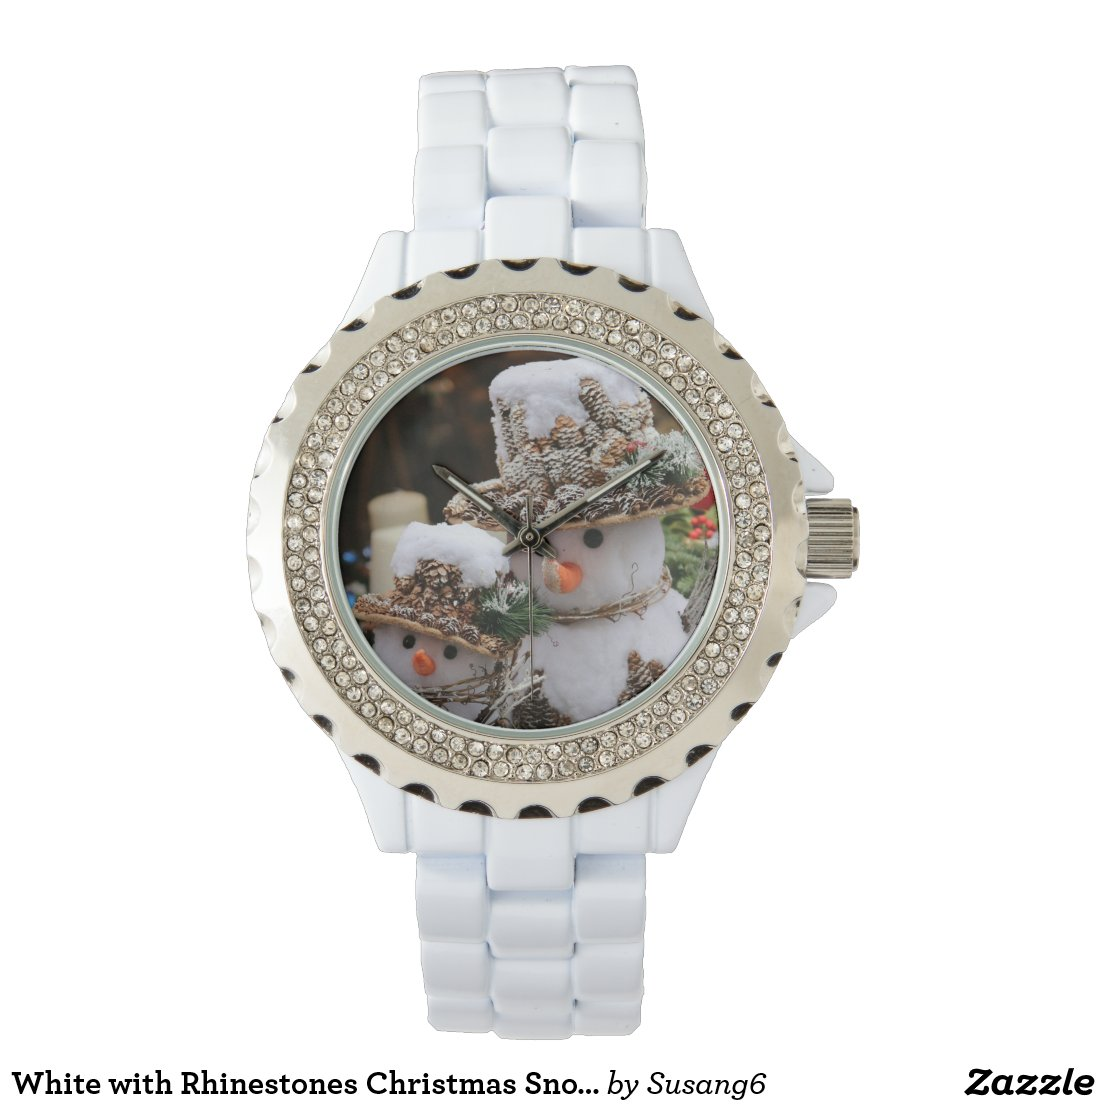 White with Rhinestones Christmas Snowman Watch